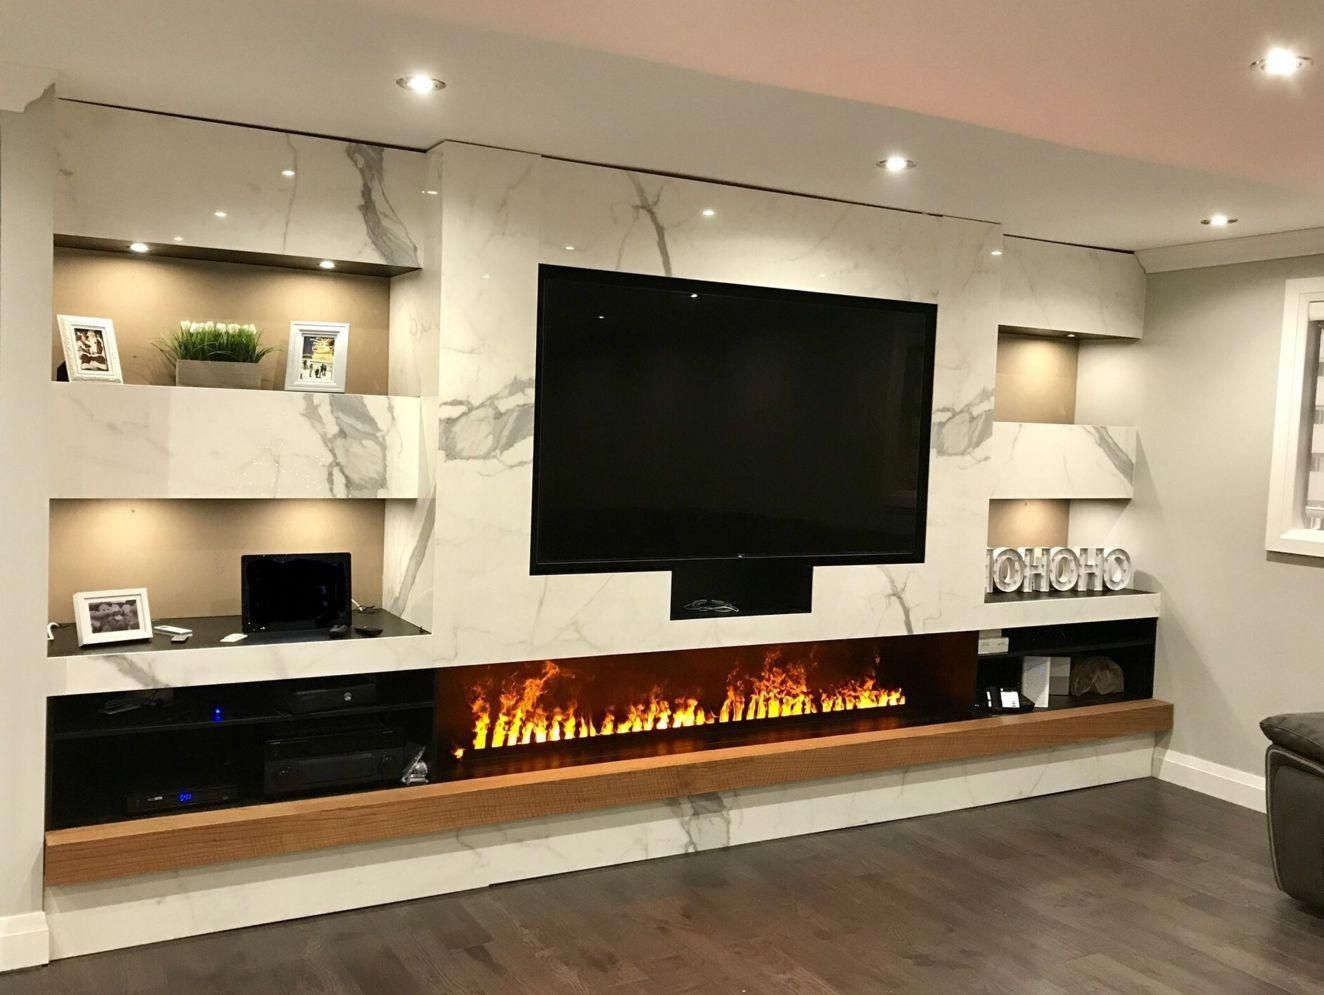 Outstanding Living Room Ideas Are Offered On Our Website Have A Look And You Wont Be Sorry You Did Living Room With Fireplace Living Room Tv Fireplace Tv Wall